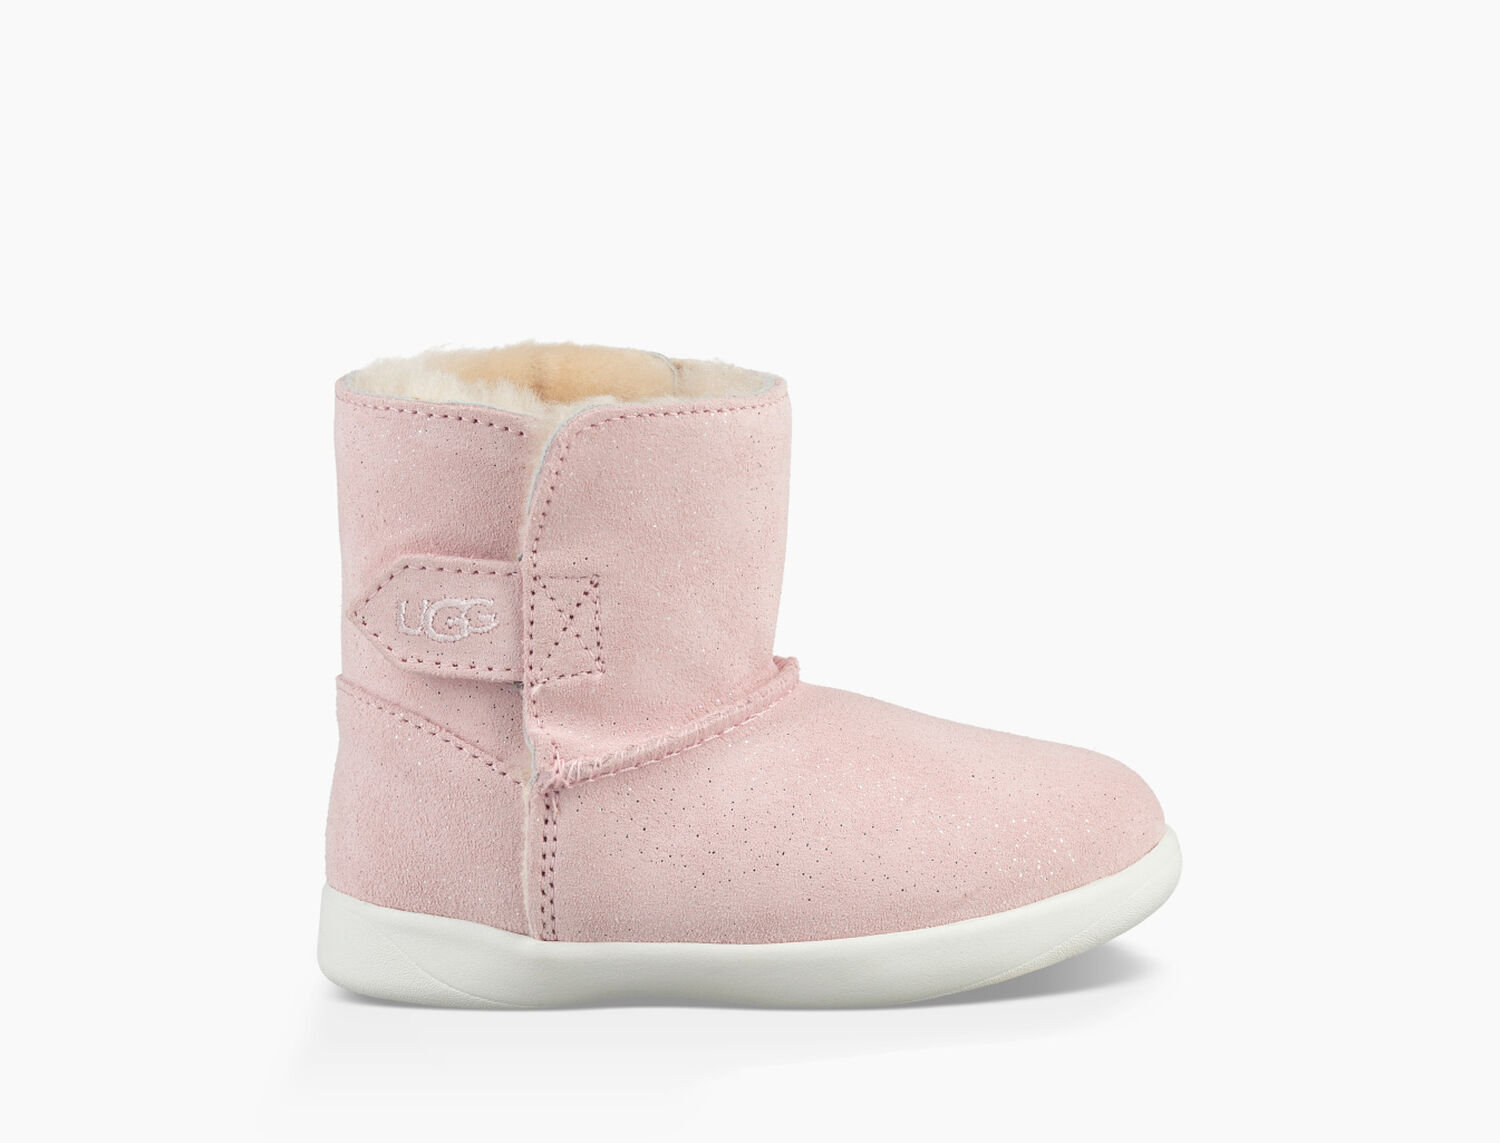 087dd081ea3 Toddlers' Share this product Keelan Sparkle Boot